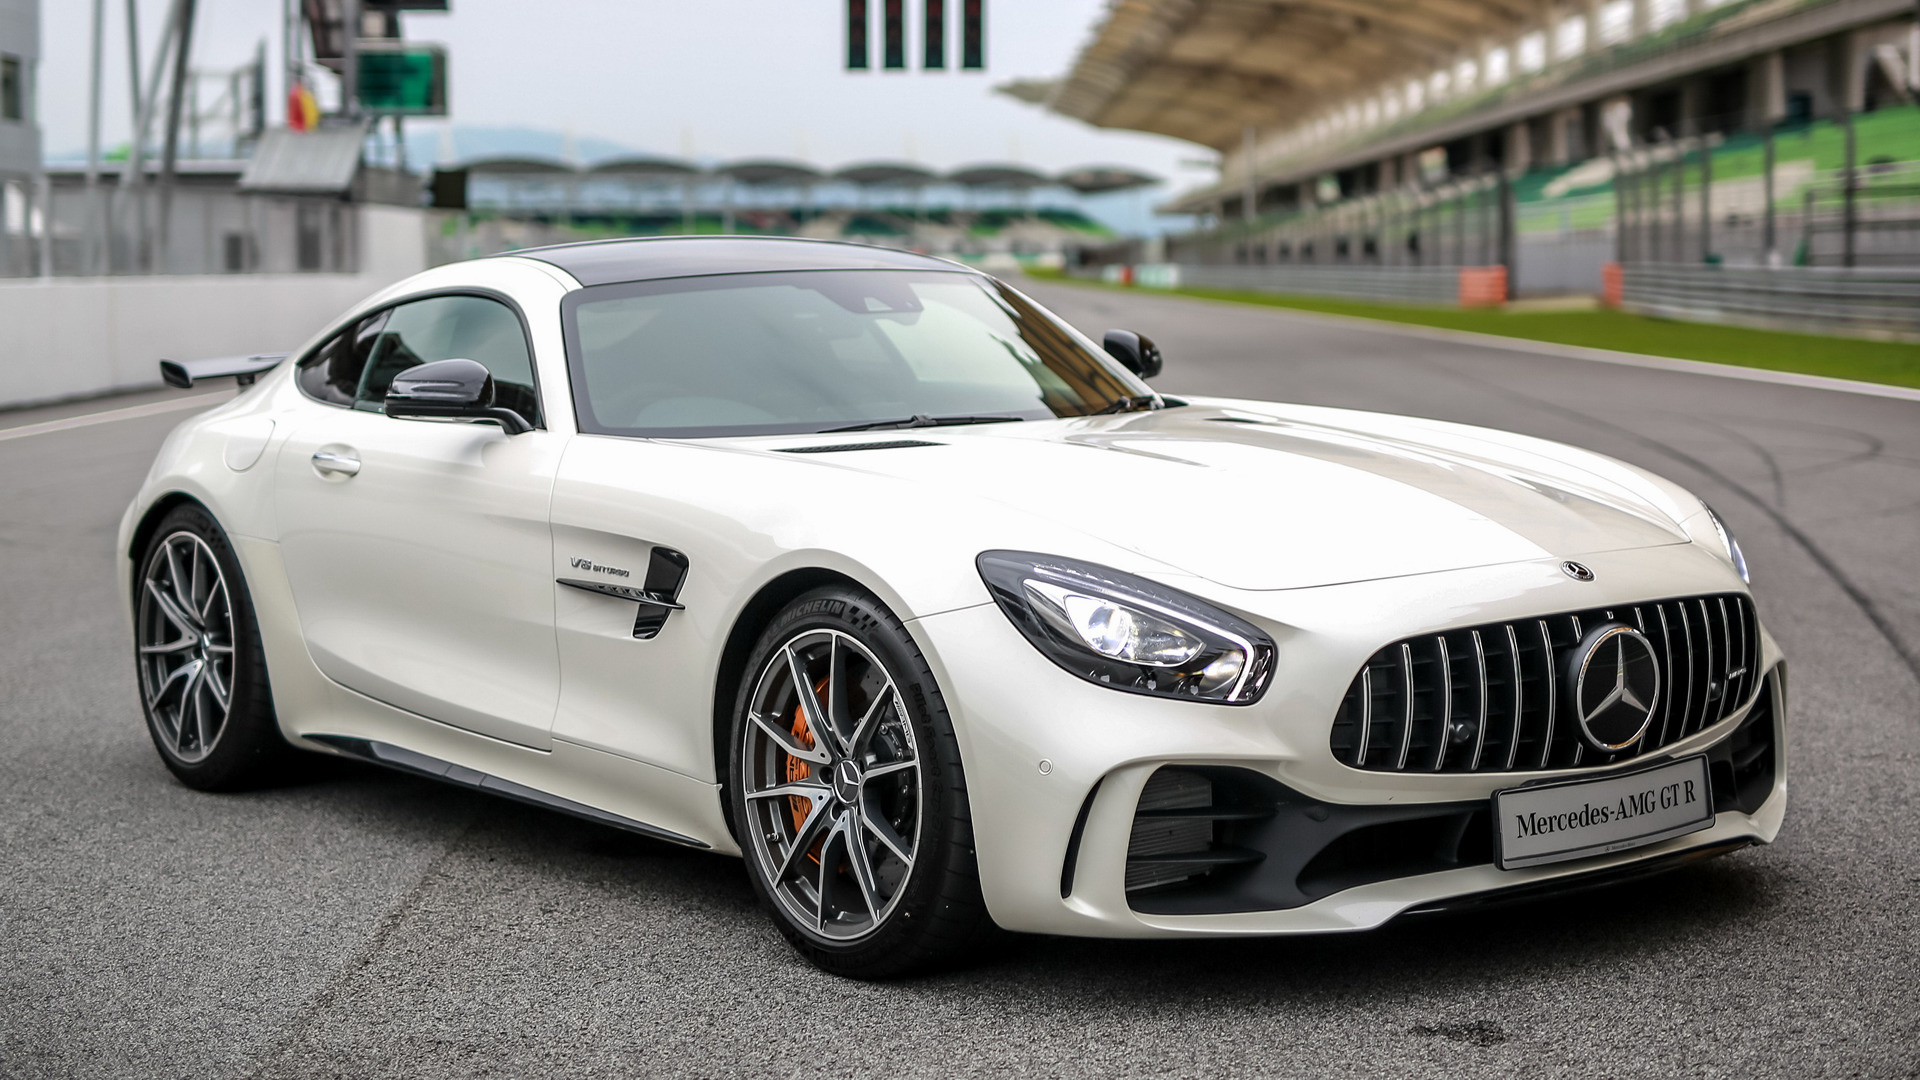 2017 Mercedes Amg Gt R Hd Wallpaper Background Image 1920x1080